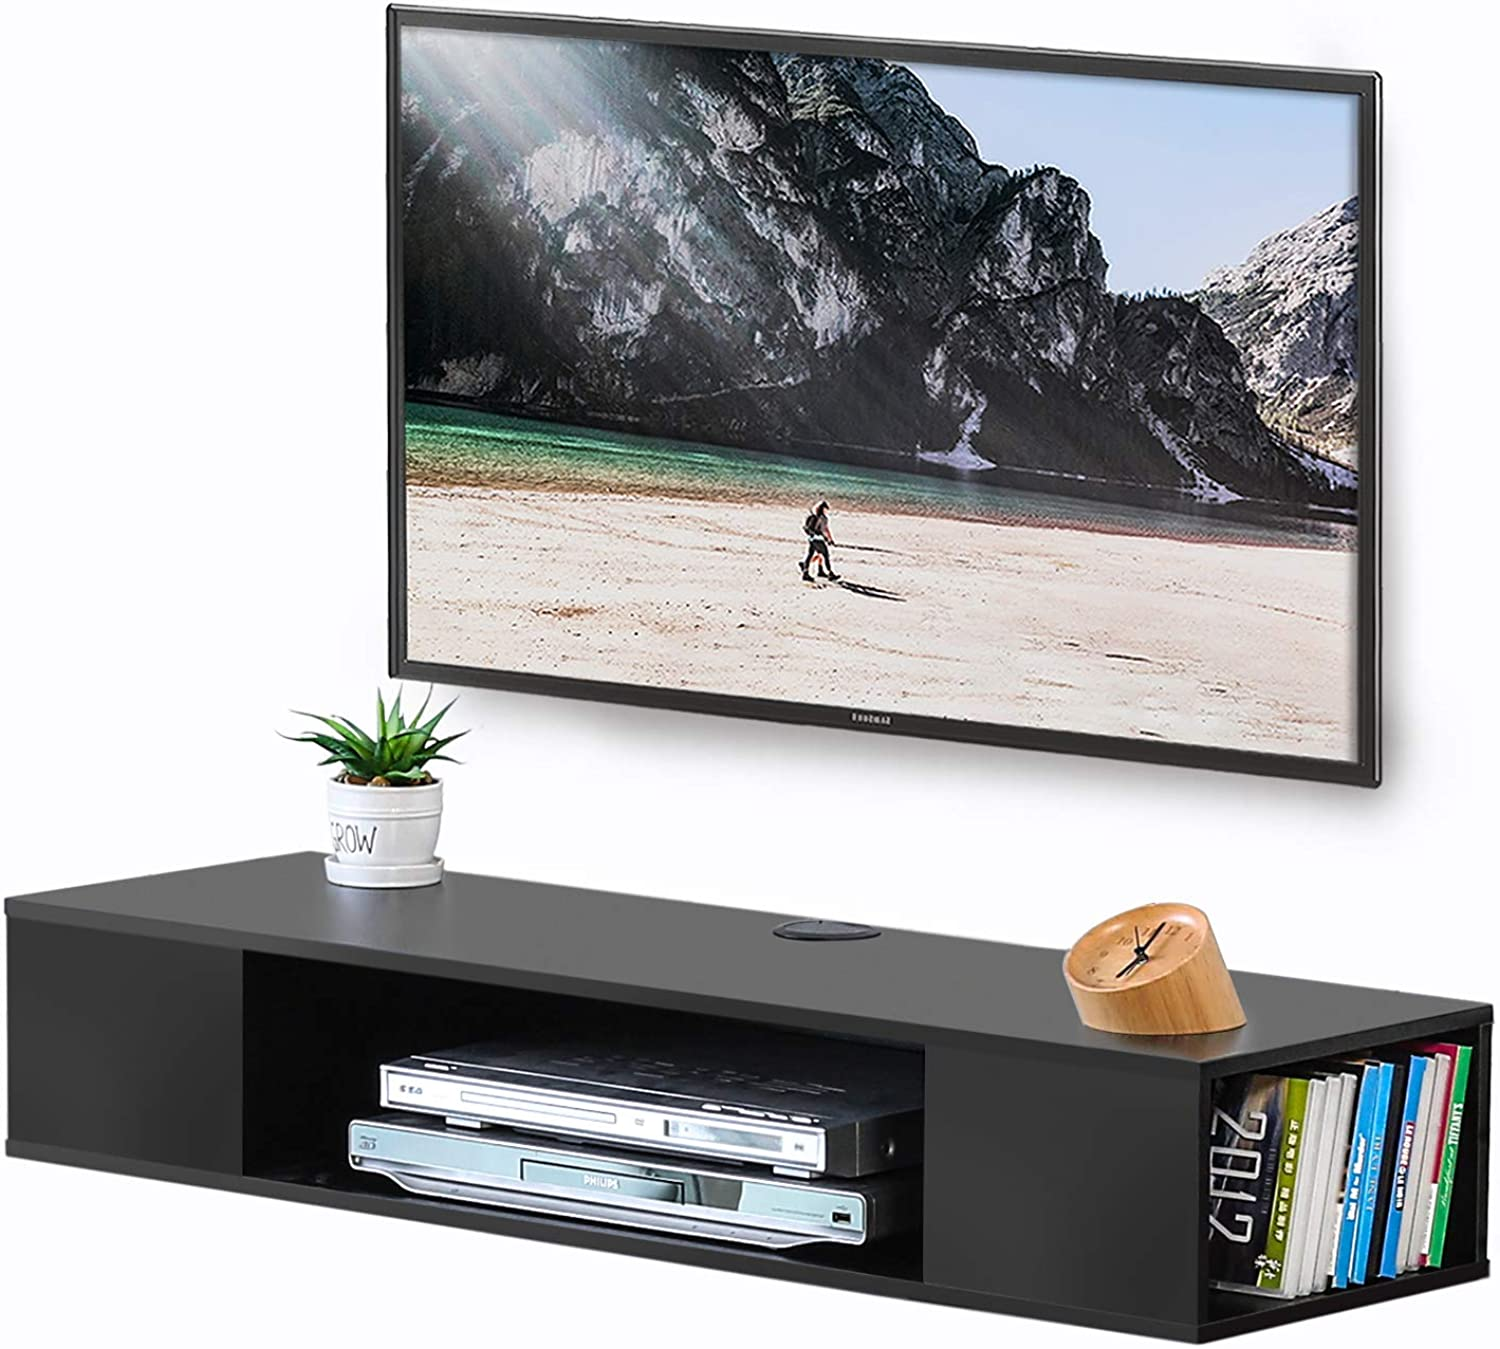 FITUEYES Floating TV Cabinet Stand Wall Mounted AV Shelf Entertainment Unit,Black